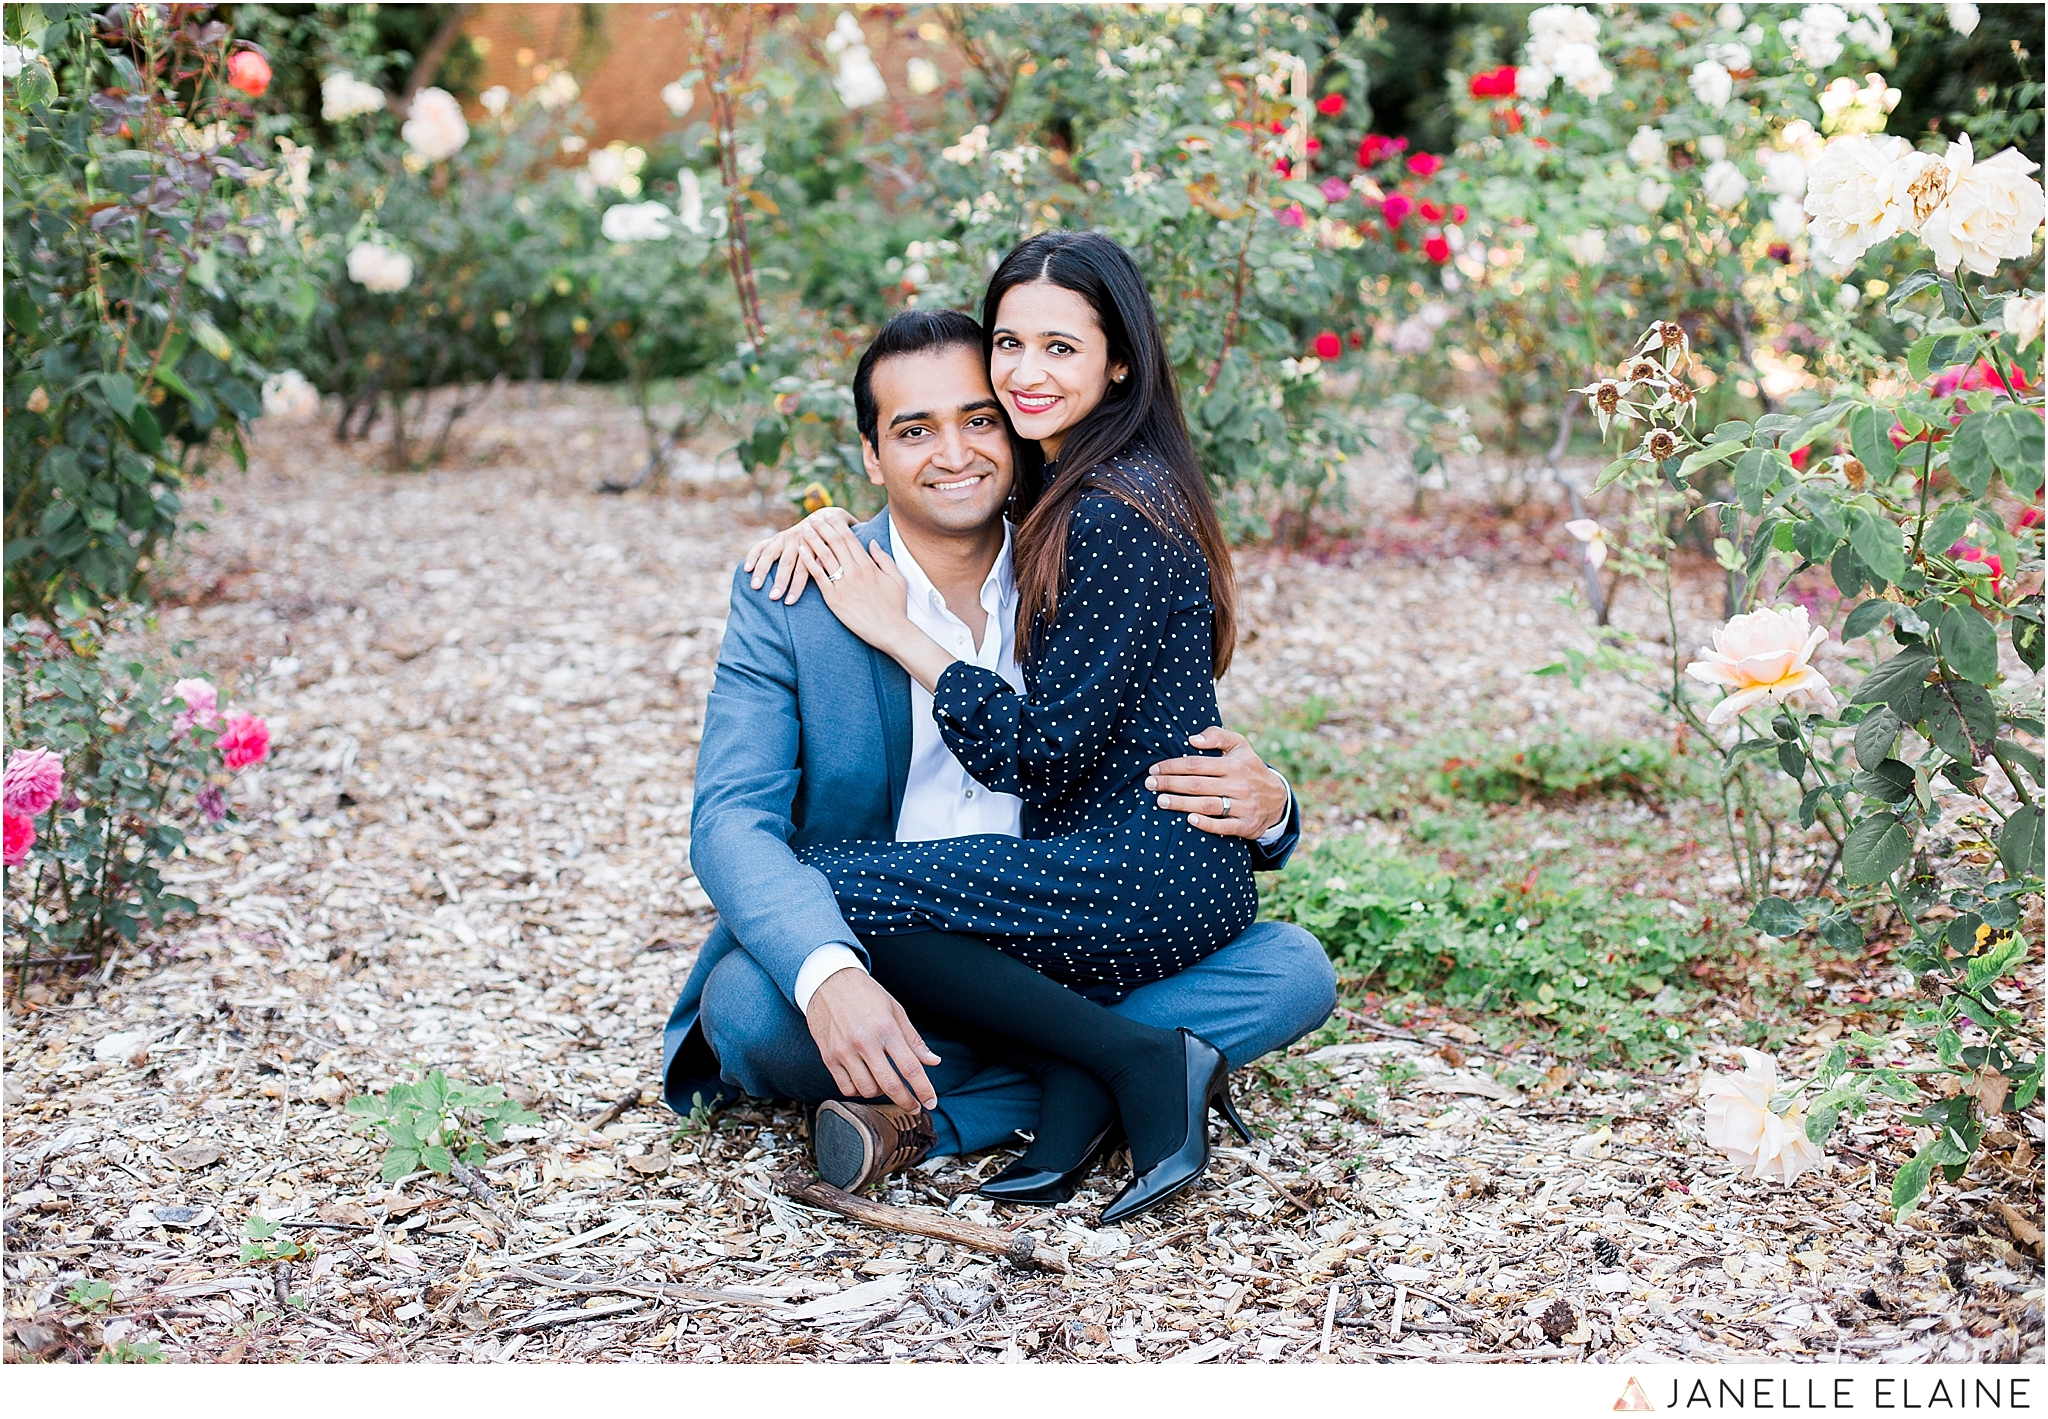 janelle elaine photography-zain and umema-seattle-uw-red square-engagement-photographer-136.jpg